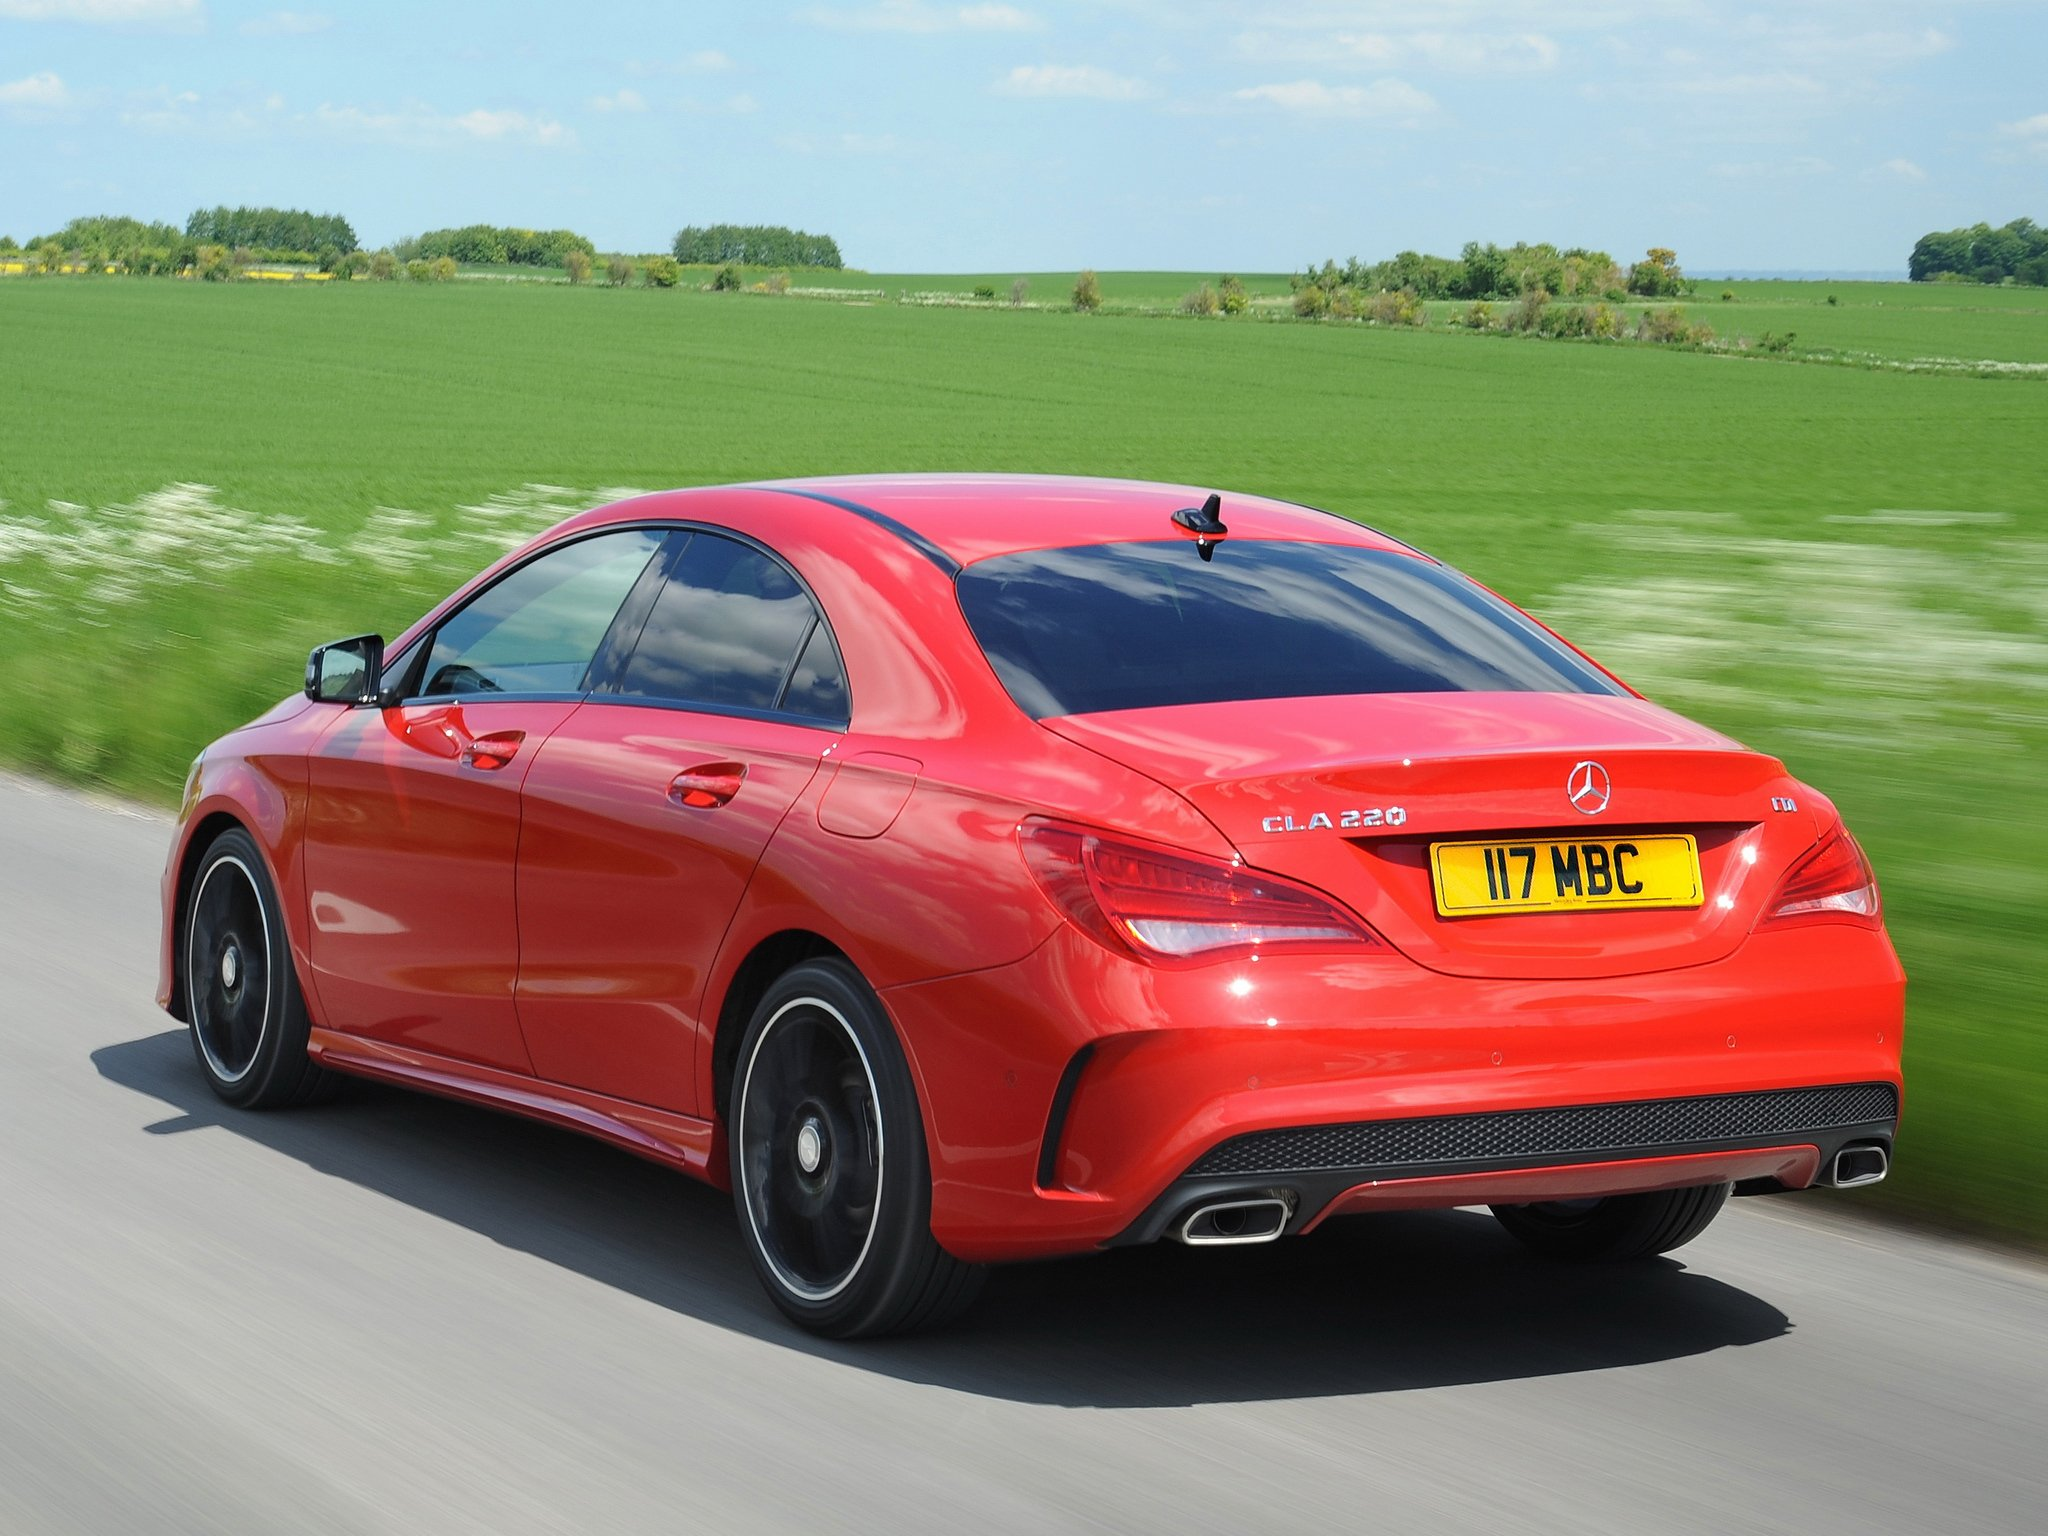 Mercedes benz cla 220 cdi amg sports package uk spec c117 for Red mercedes benz cla